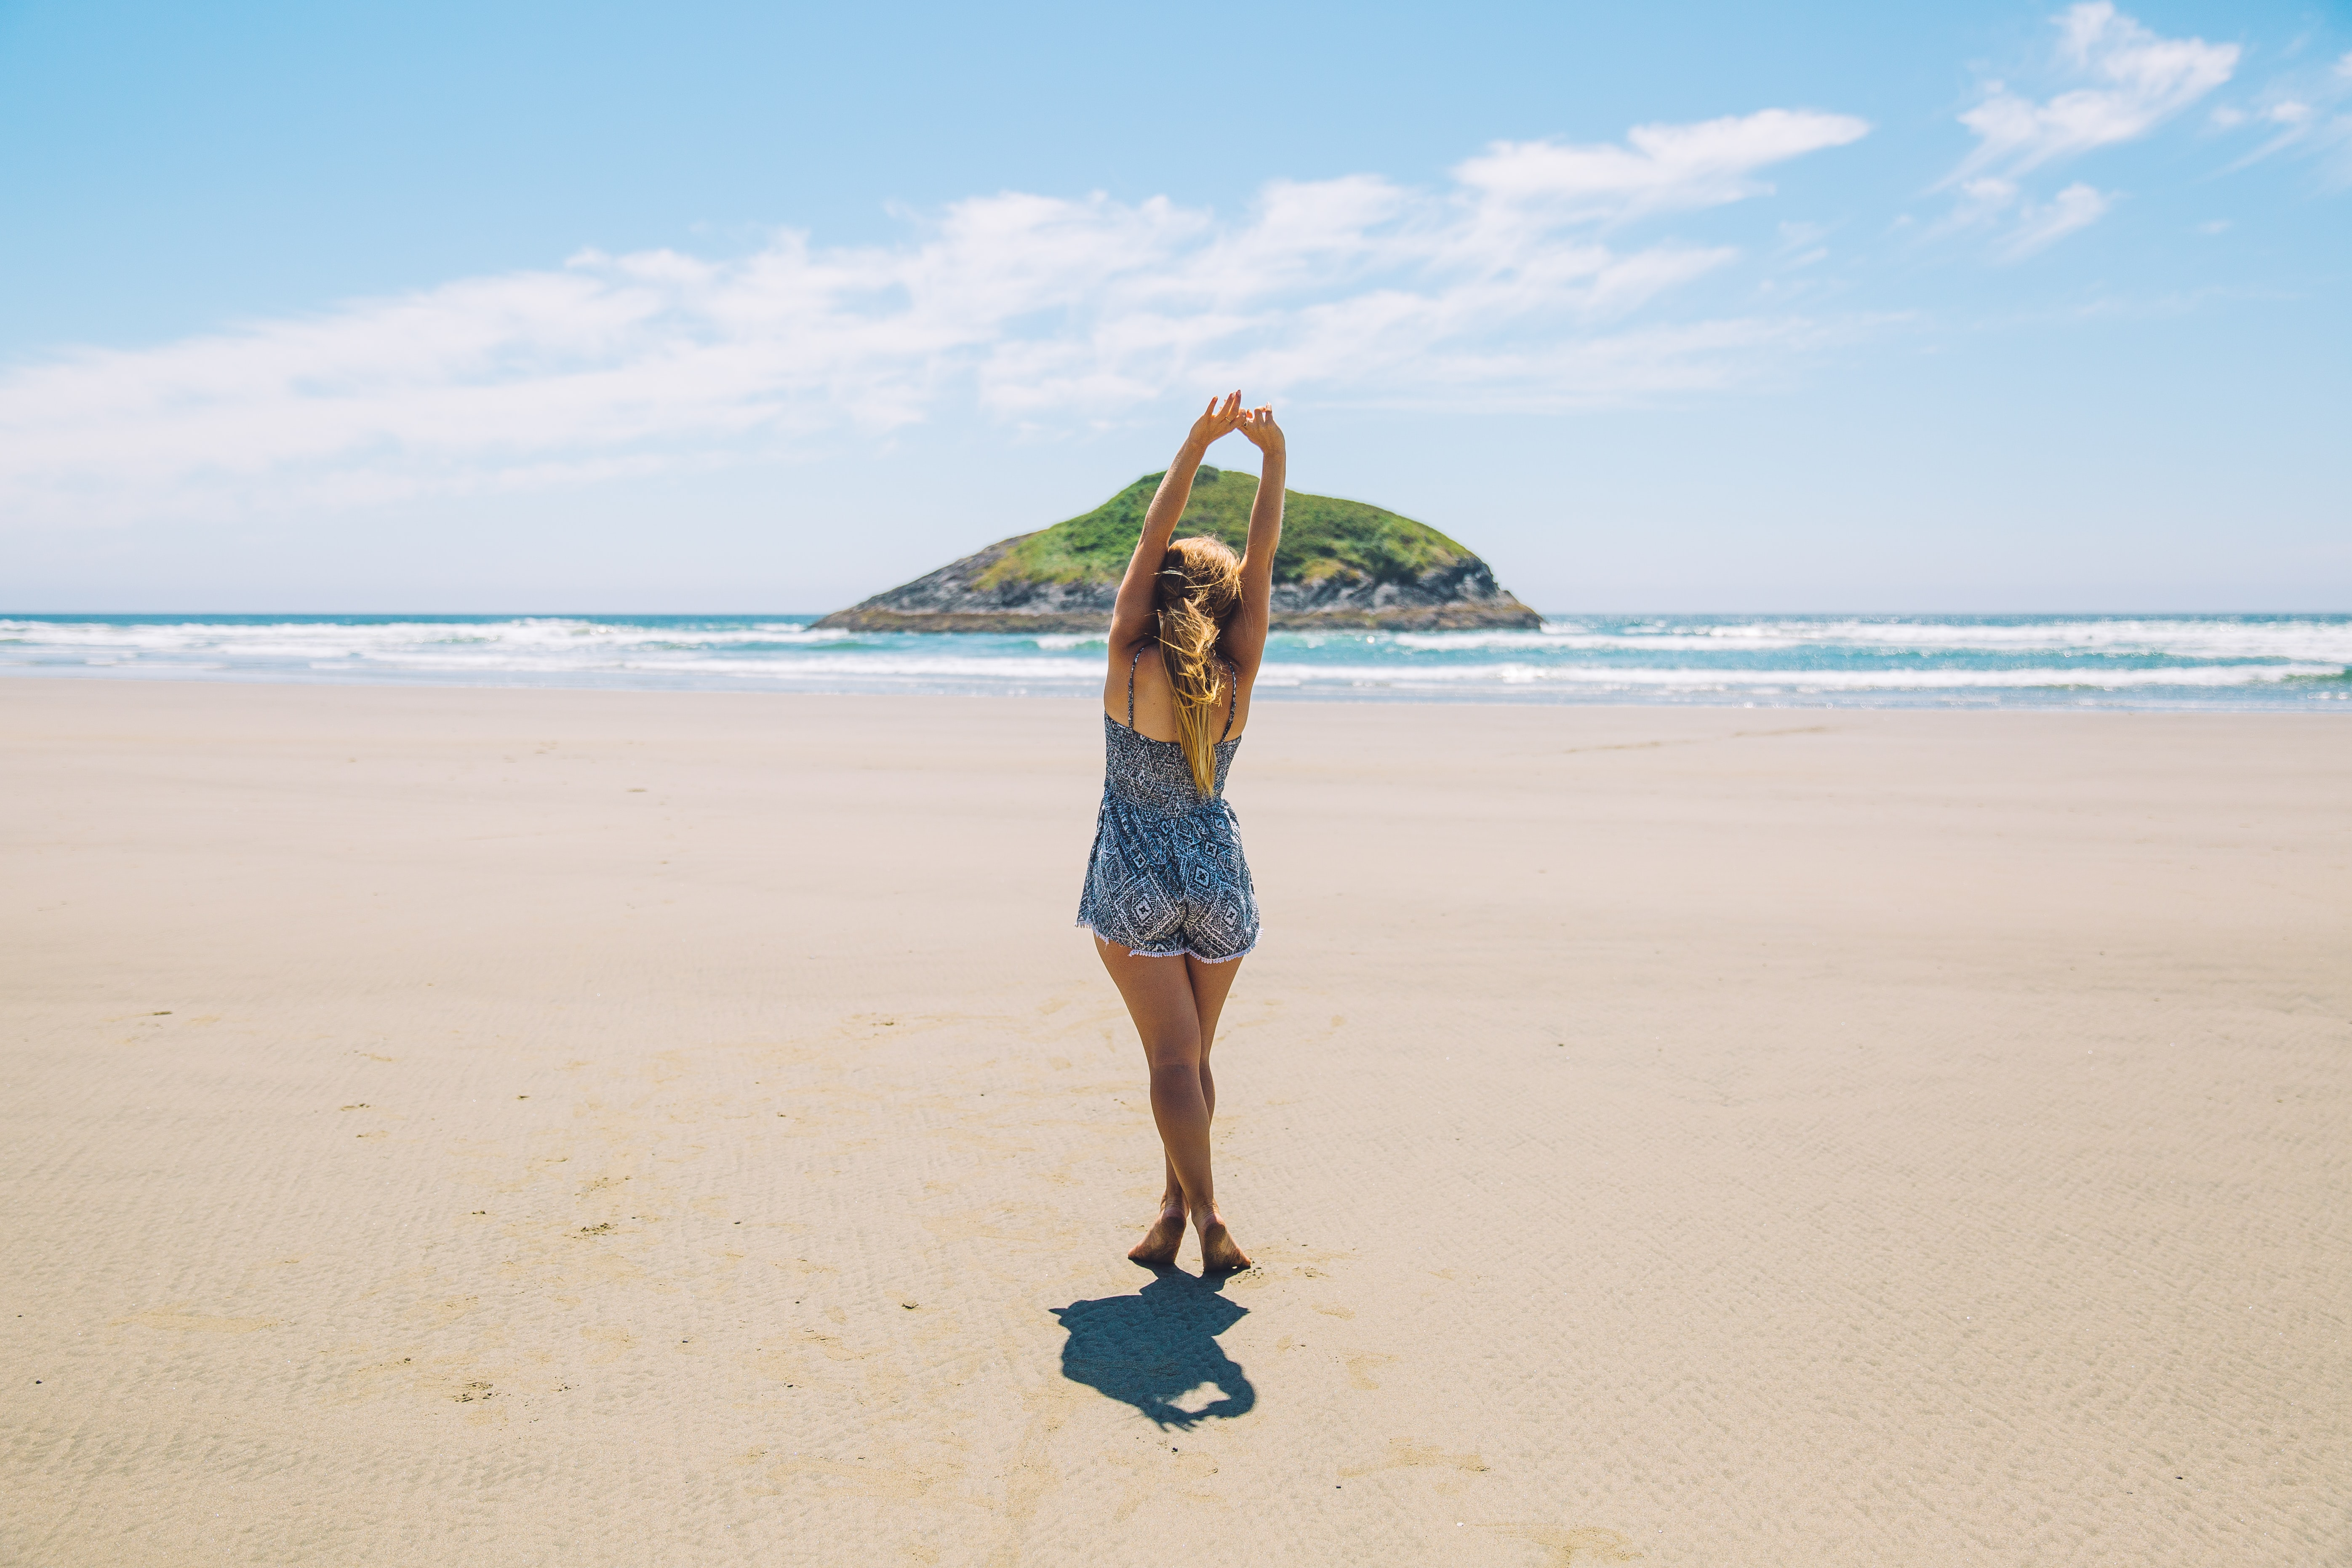 Young woman stretching on a sand beach with an island in the background in Tofino